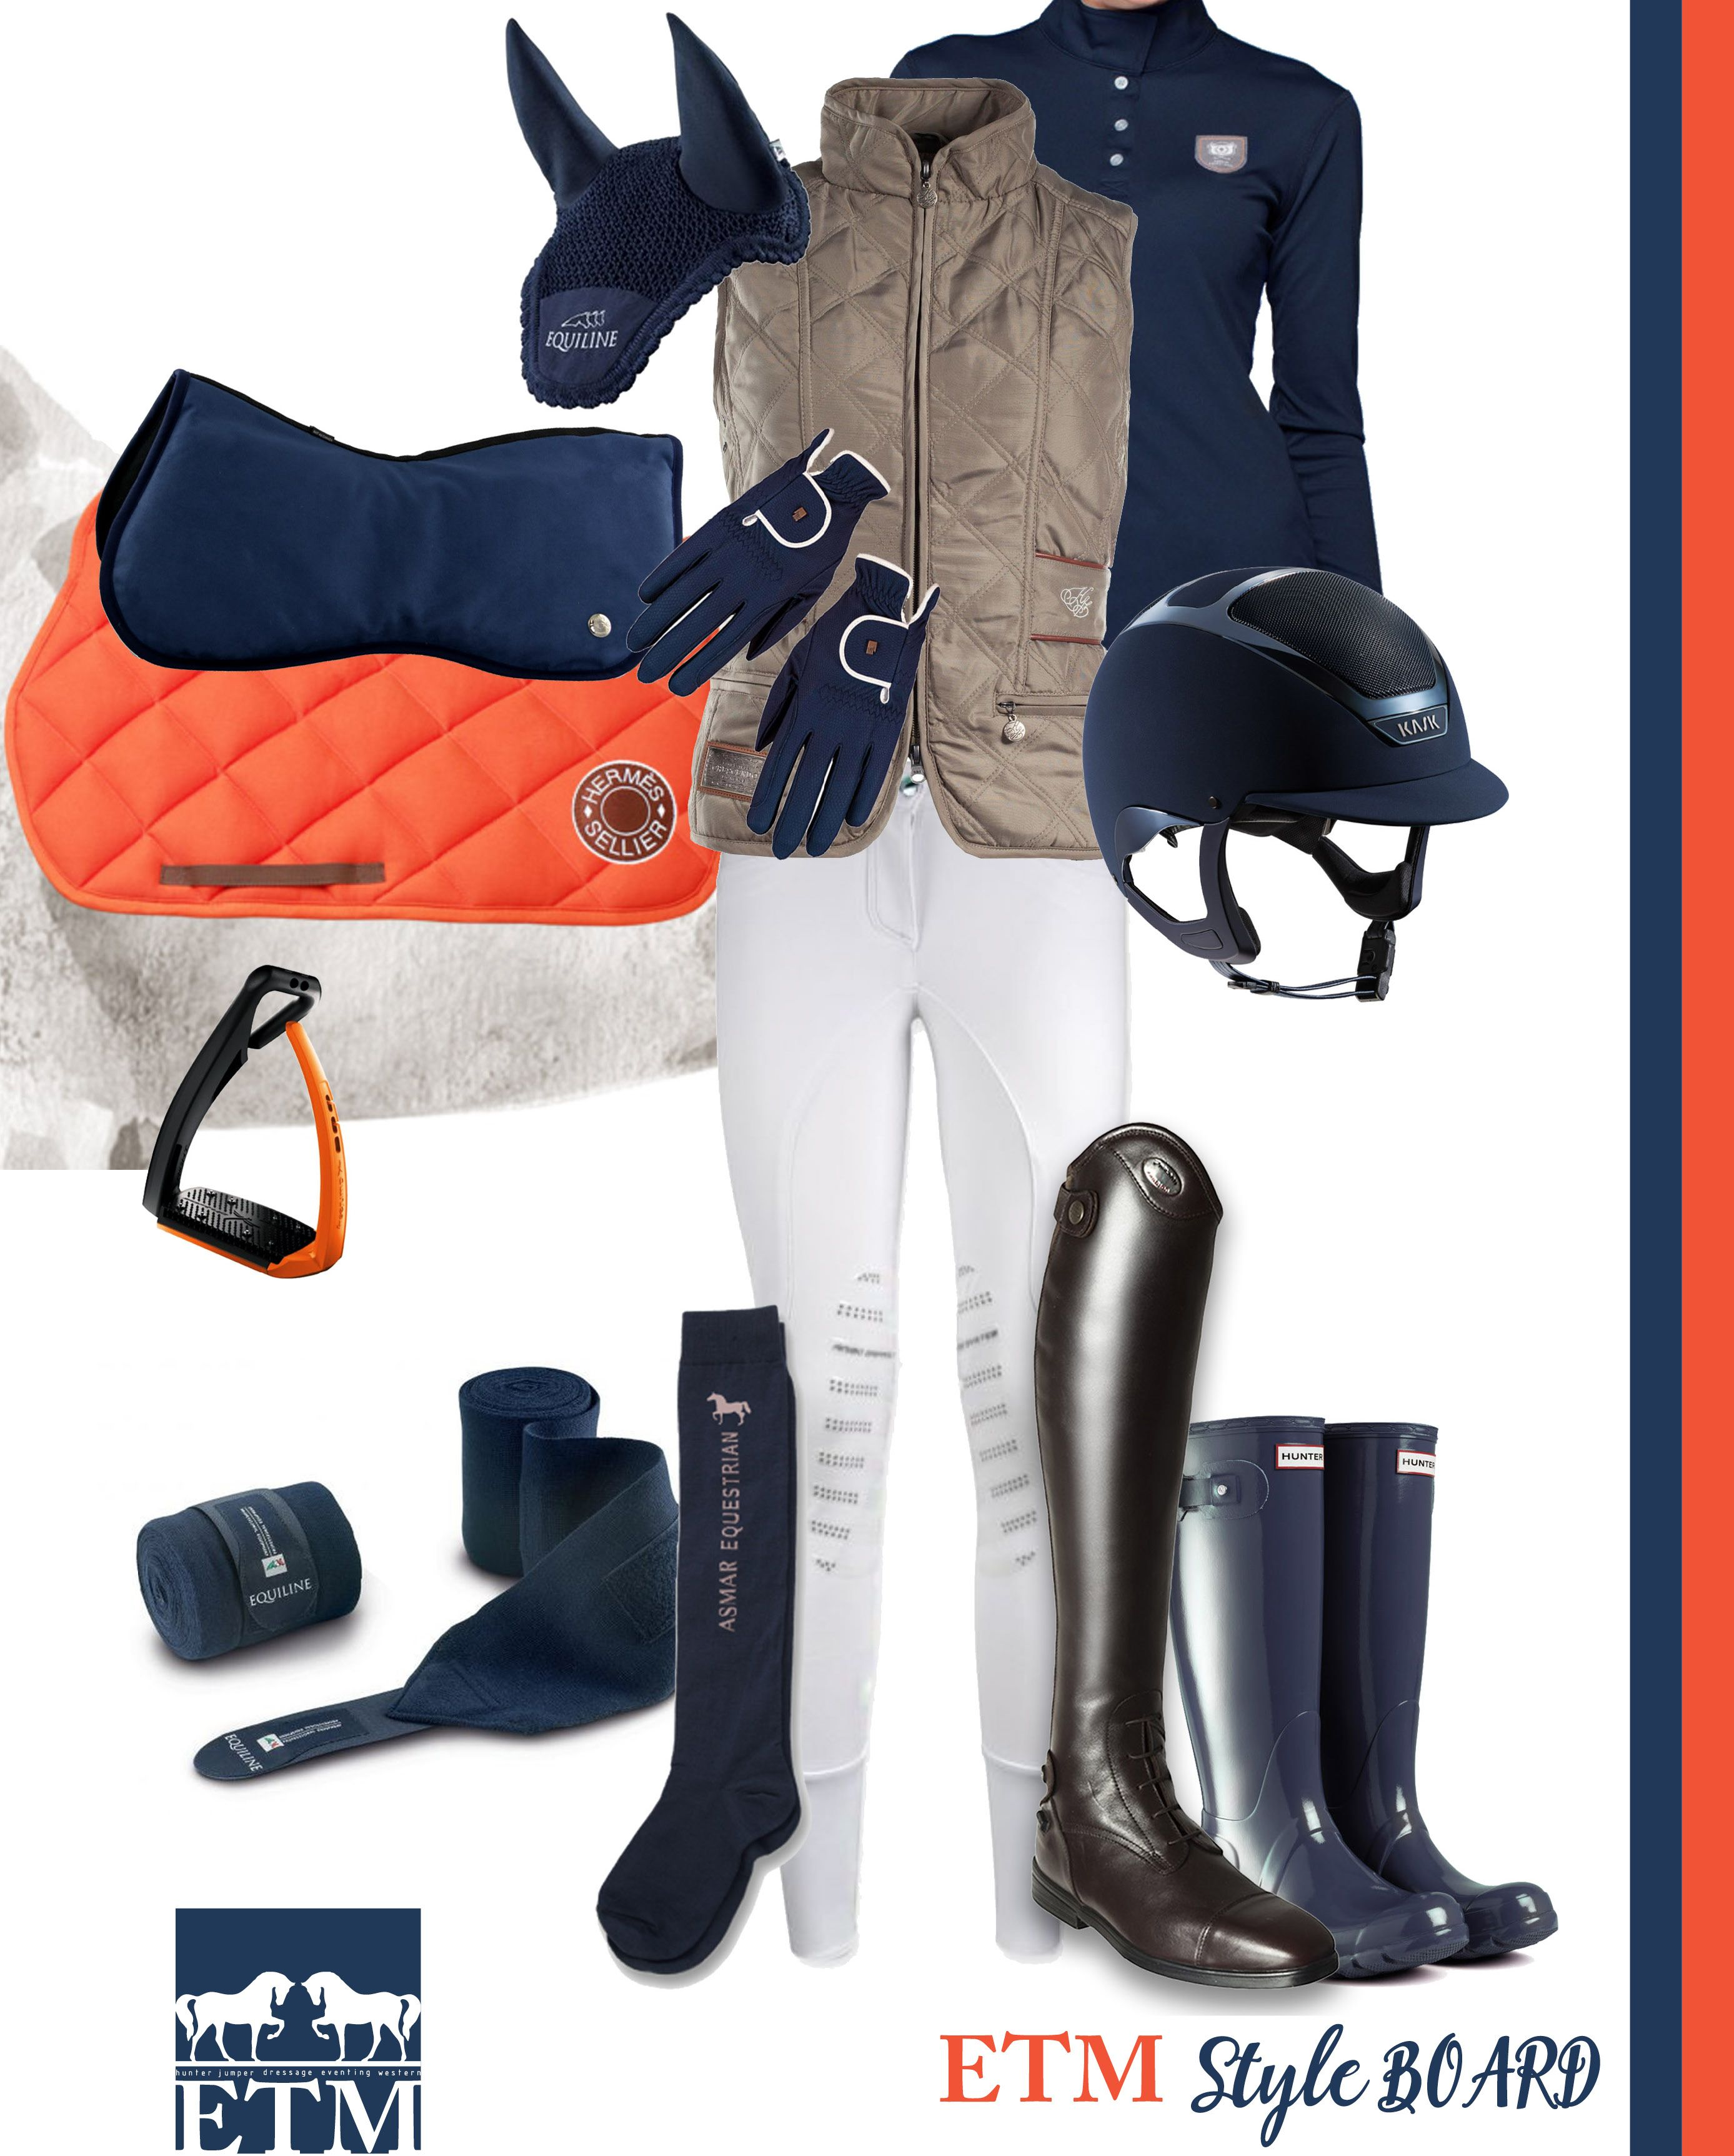 Our very own Style Board ORANGE and NAVY Equestrian